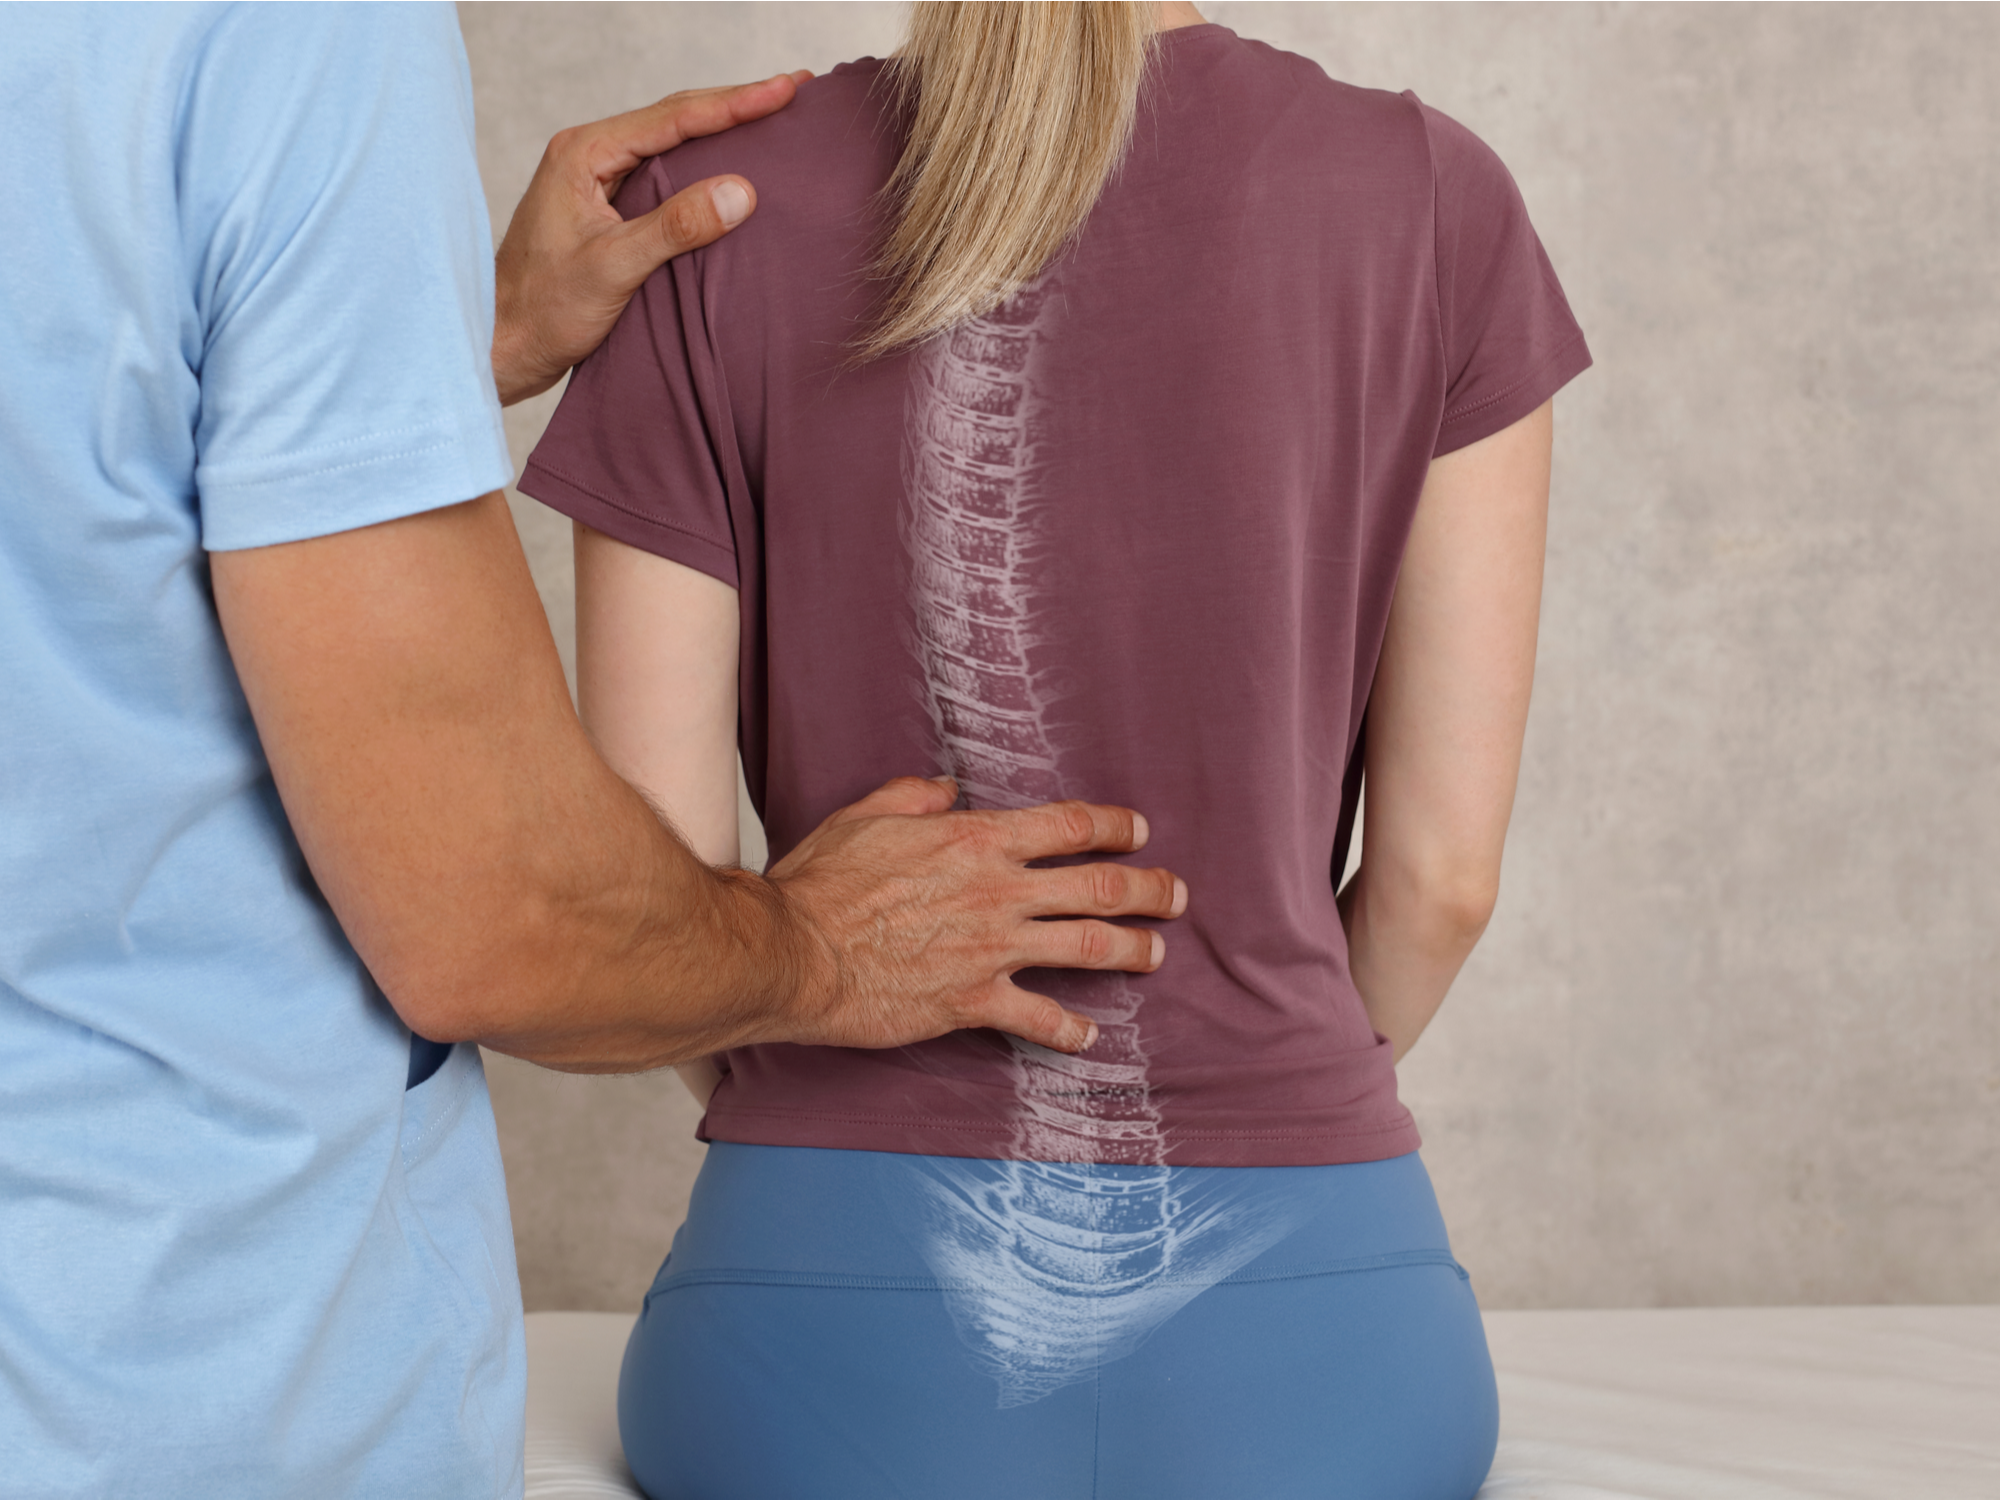 How Can a Chiropractor Help With Scoliosis?